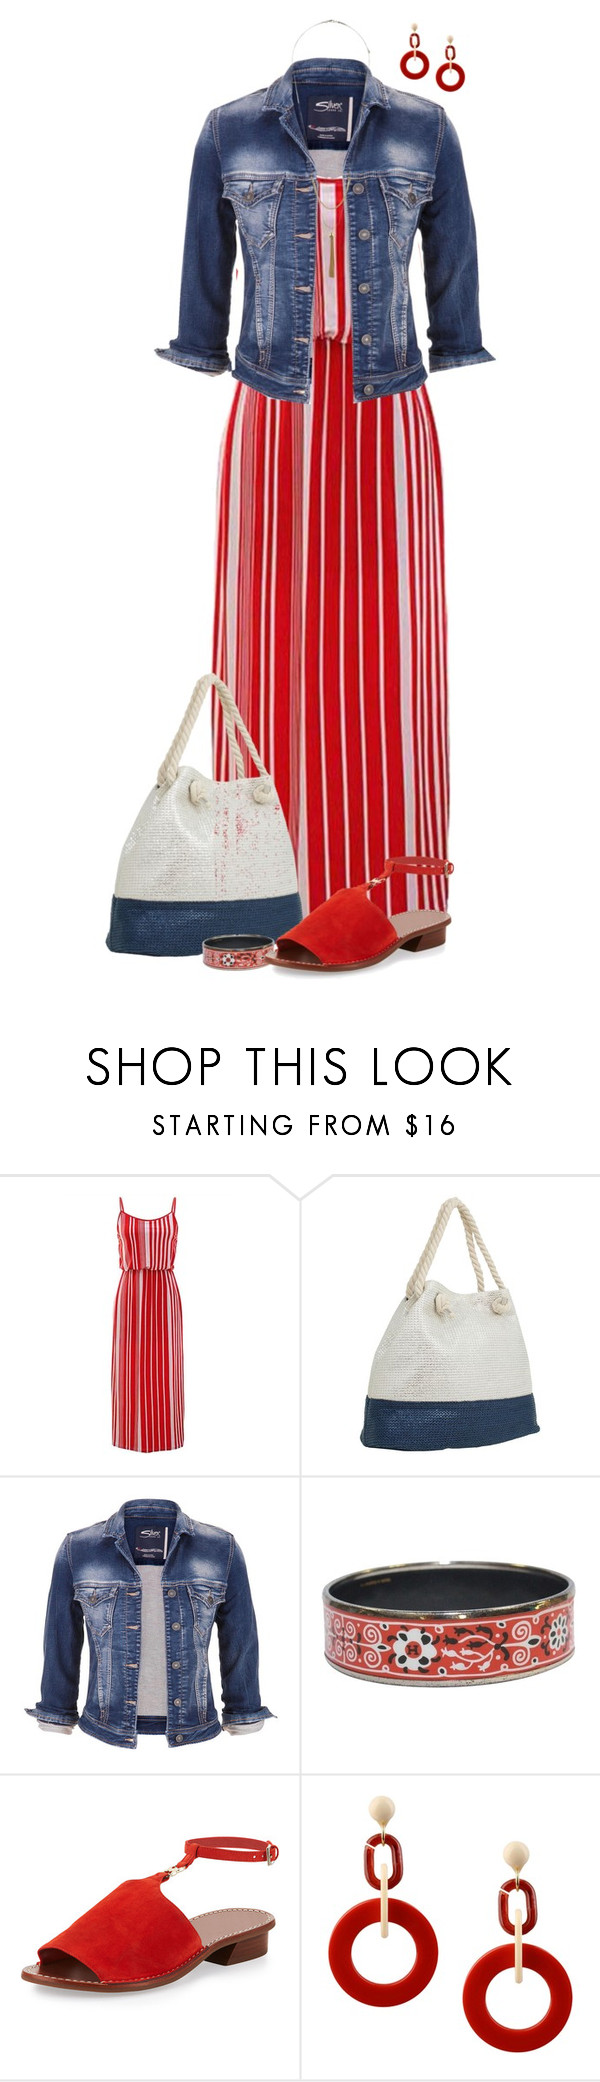 """Red, White and Blue"" by derniers ❤ liked on Polyvore featuring Magid, maurices, Hermès, Tory Burch, Dettagli and Topshop"